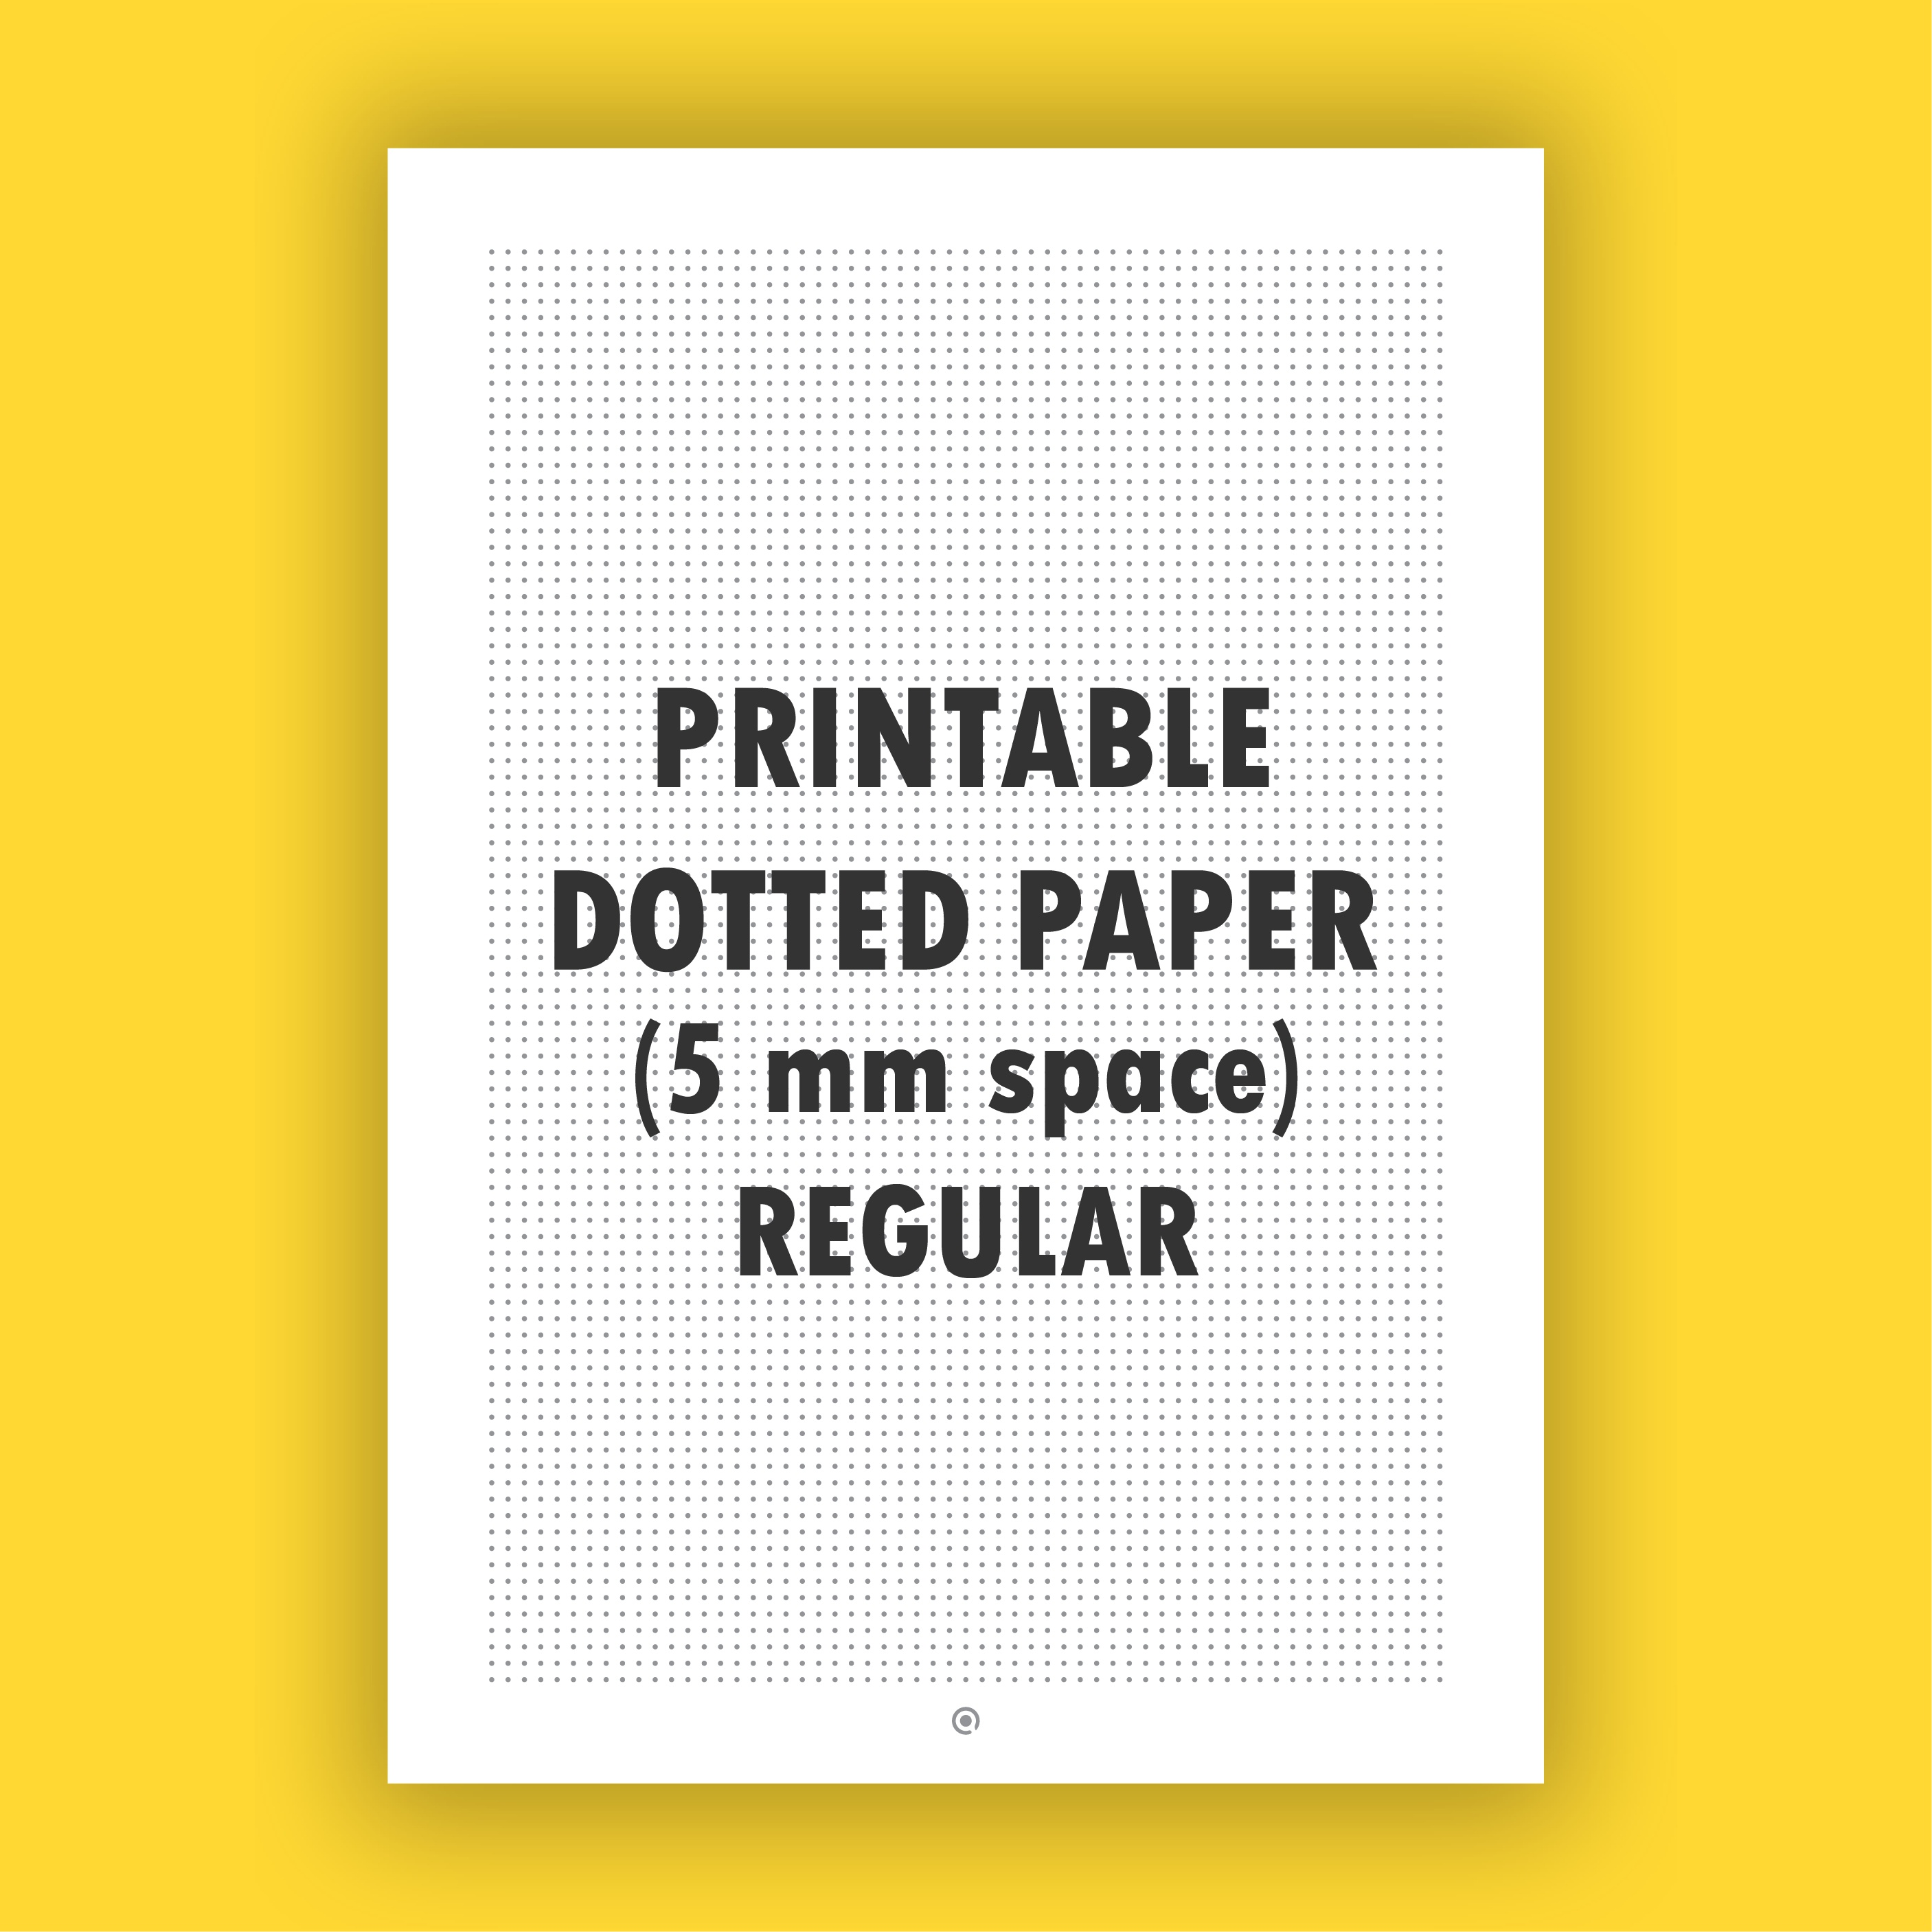 picture regarding Printable Dotted Paper referred to as Printable Dotted Paper (5 mm House) Monthly